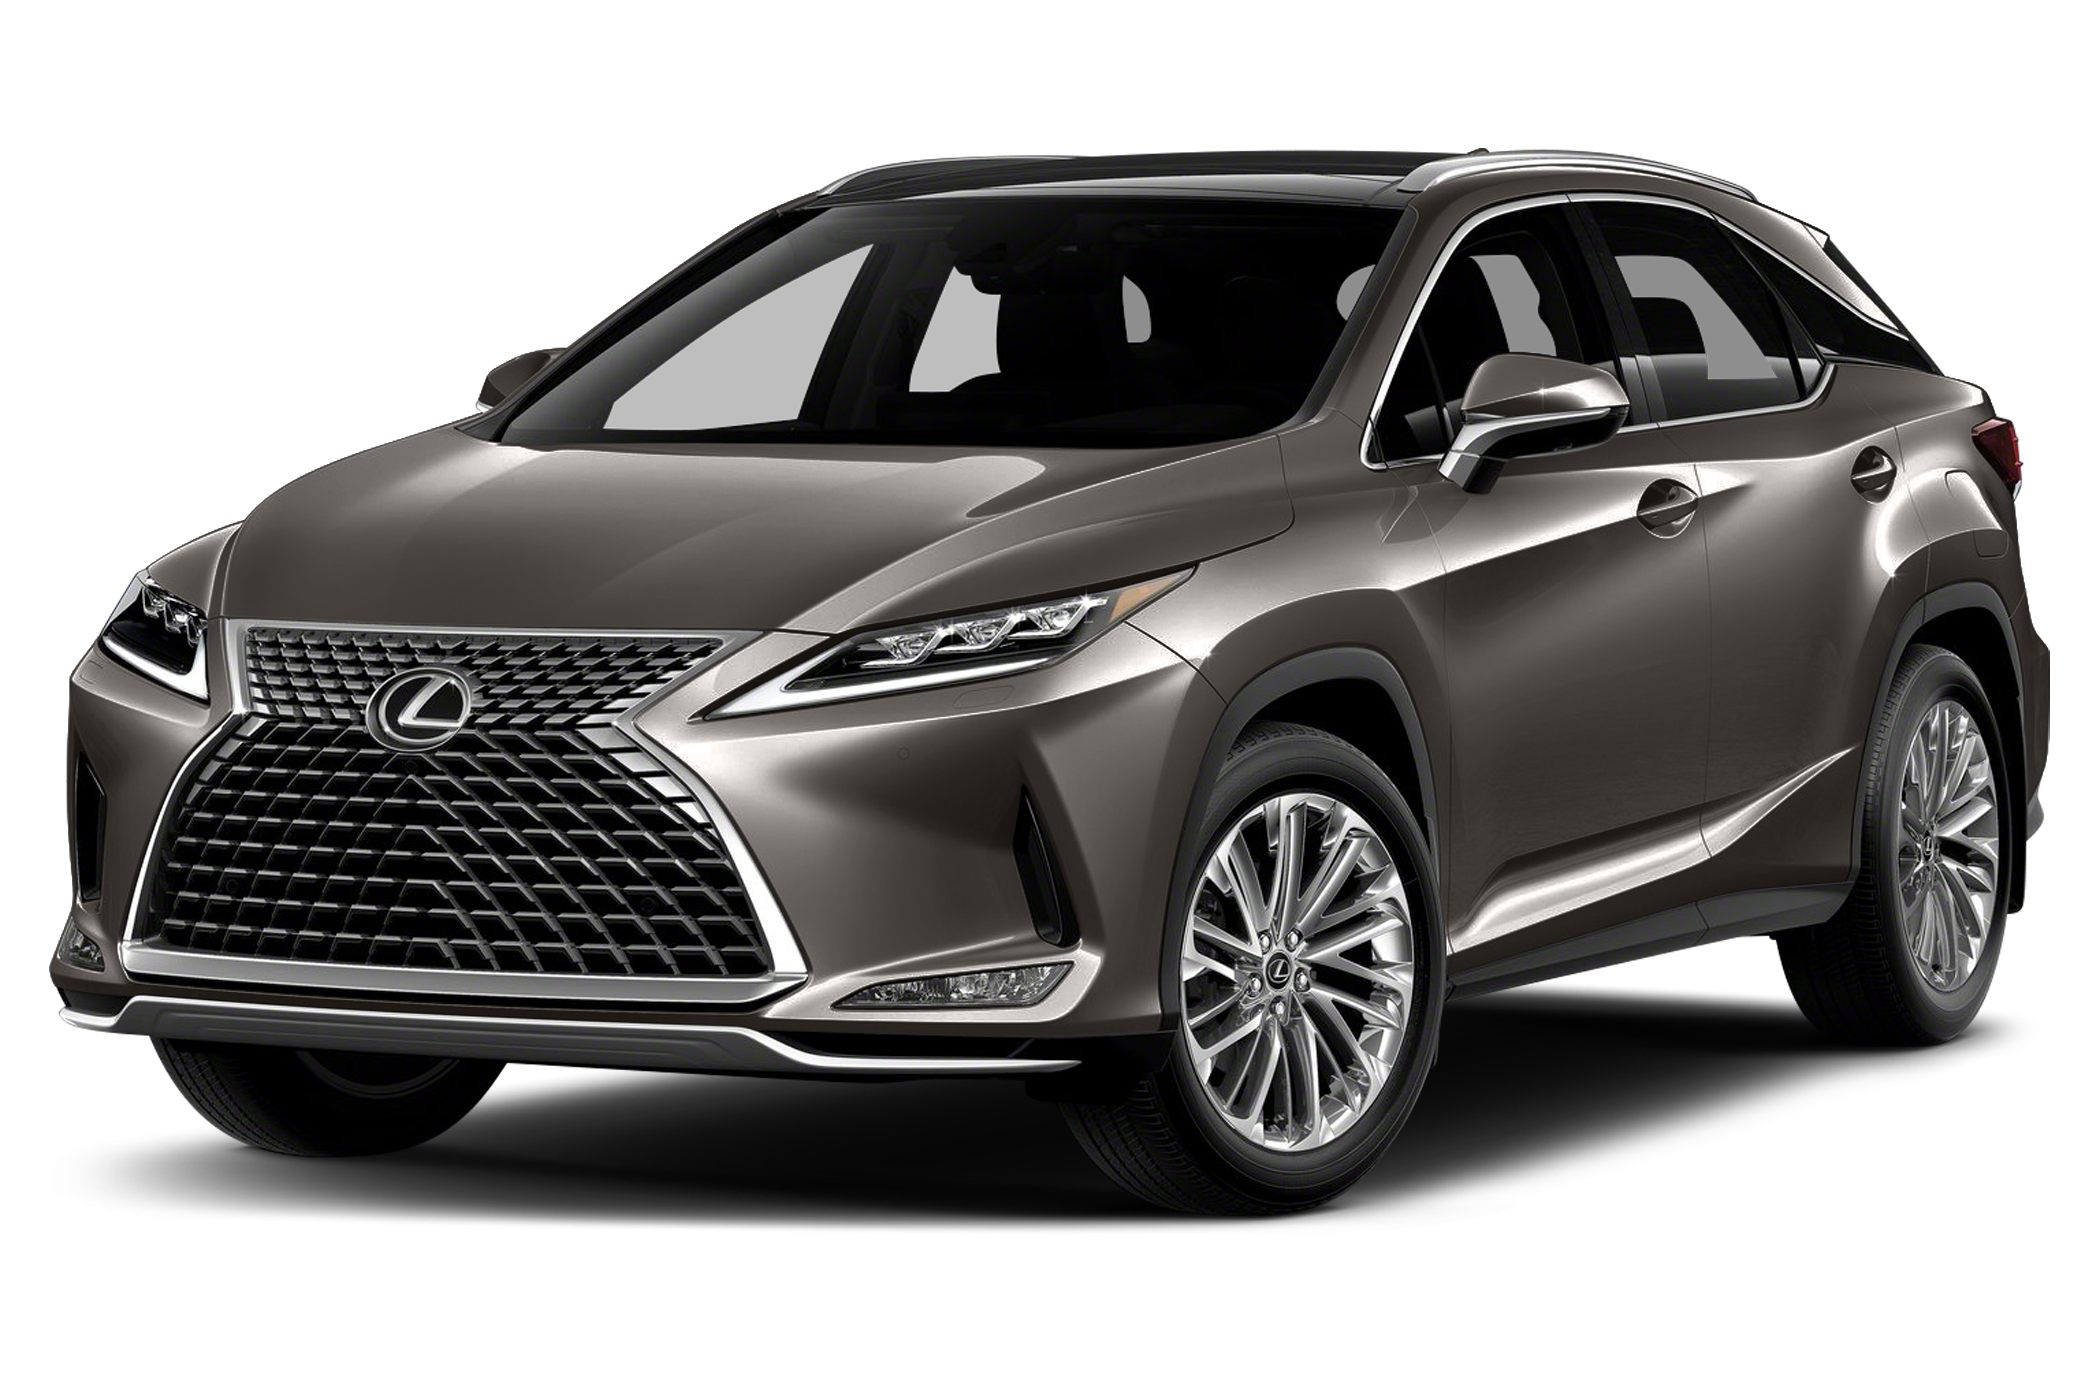 Lexus RX gets Top Safety Pick award from IIHS